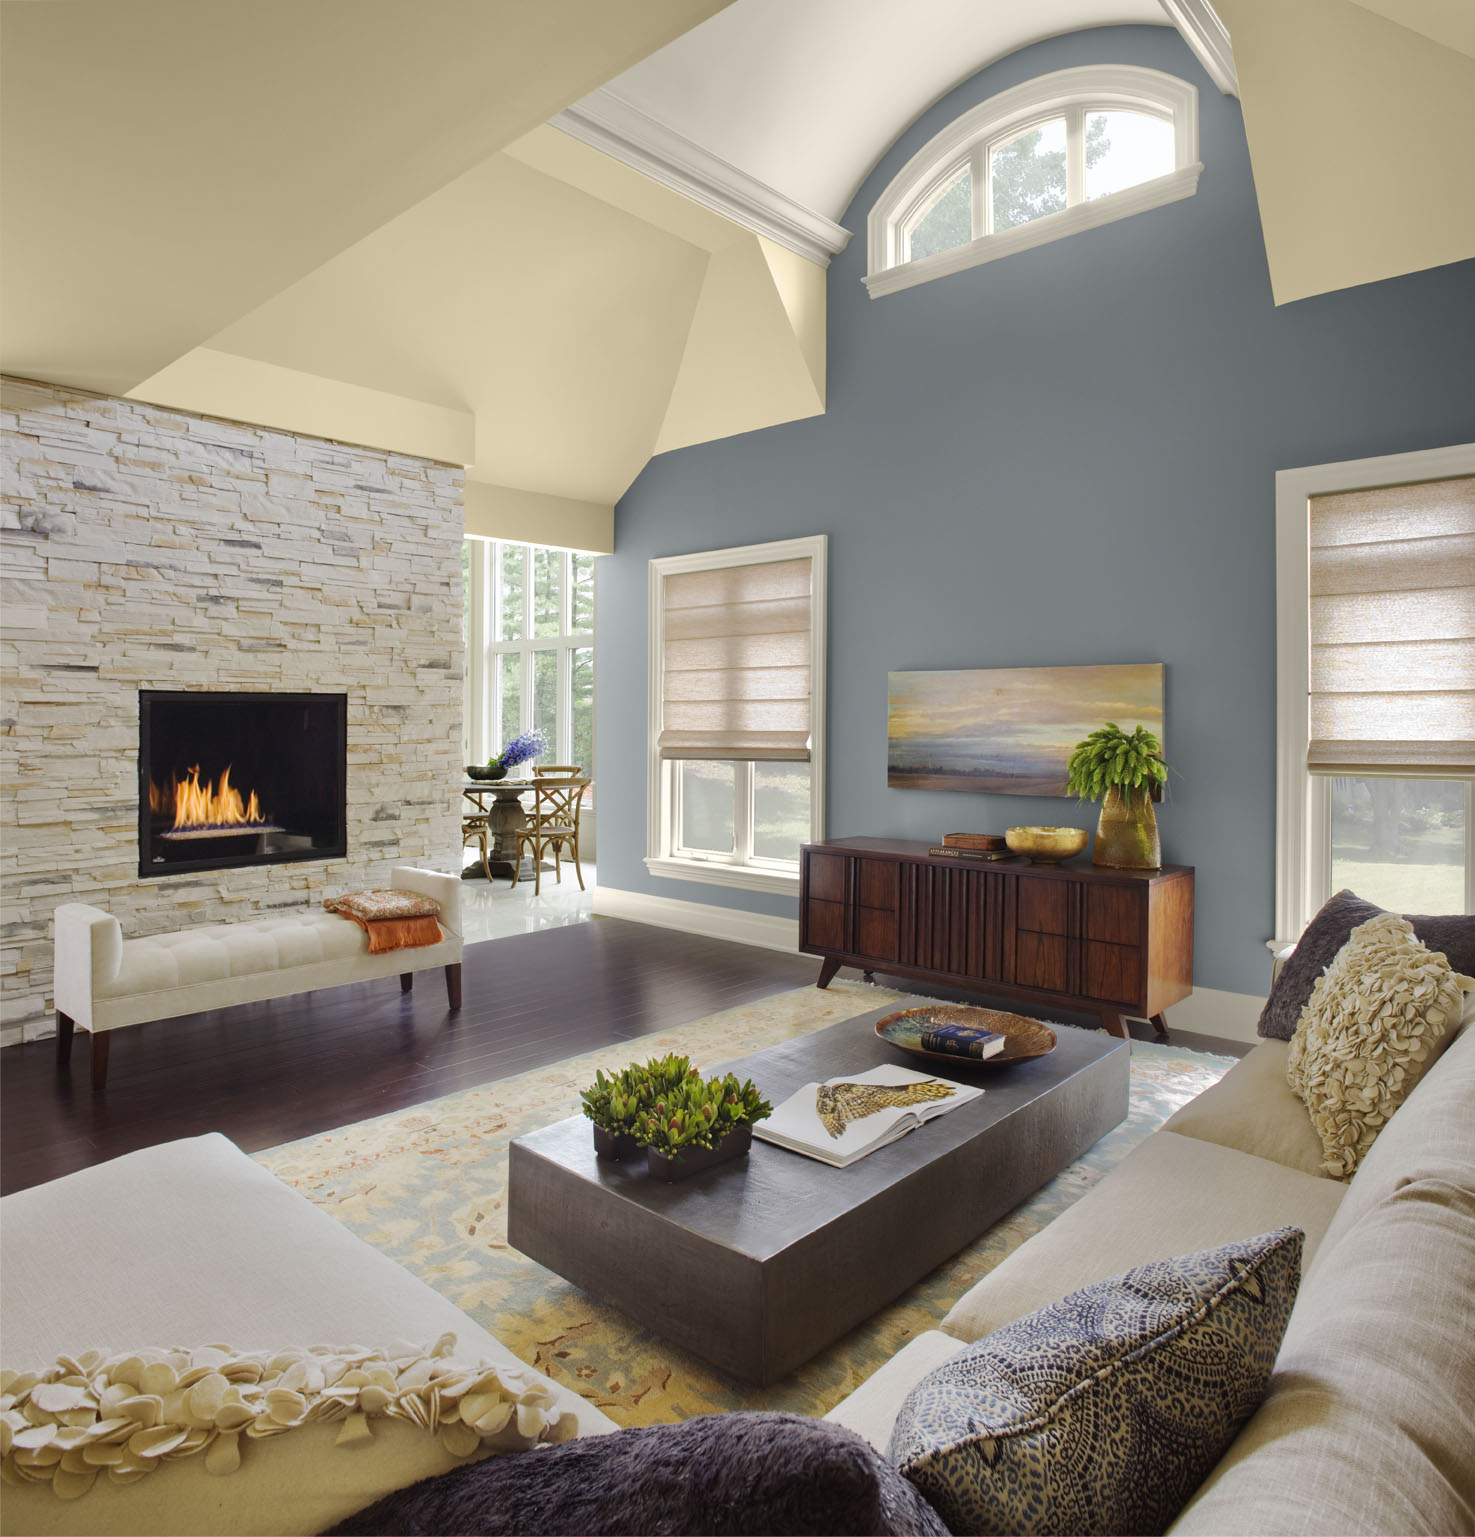 Vaulted Ceiling Design With High And Grey Wall Painting Rocks Combination Of Fireplace Warm Sofa